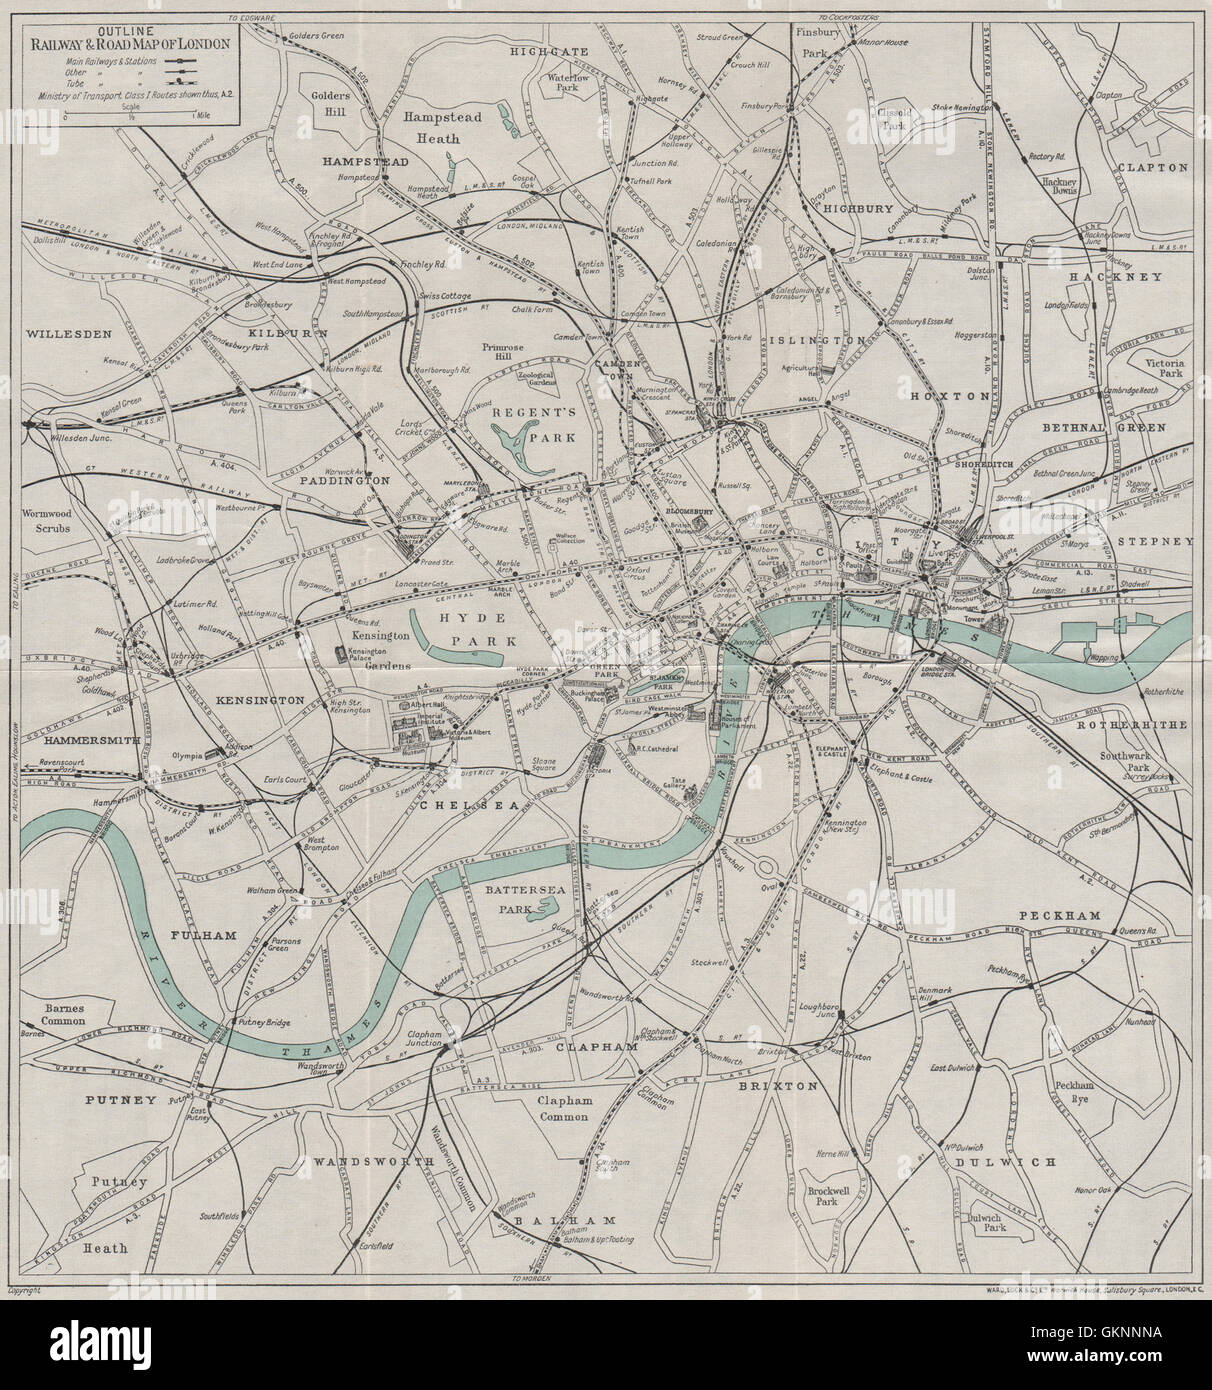 CENTRAL LONDON RAILWAY u0026 ROAD MAP Underground